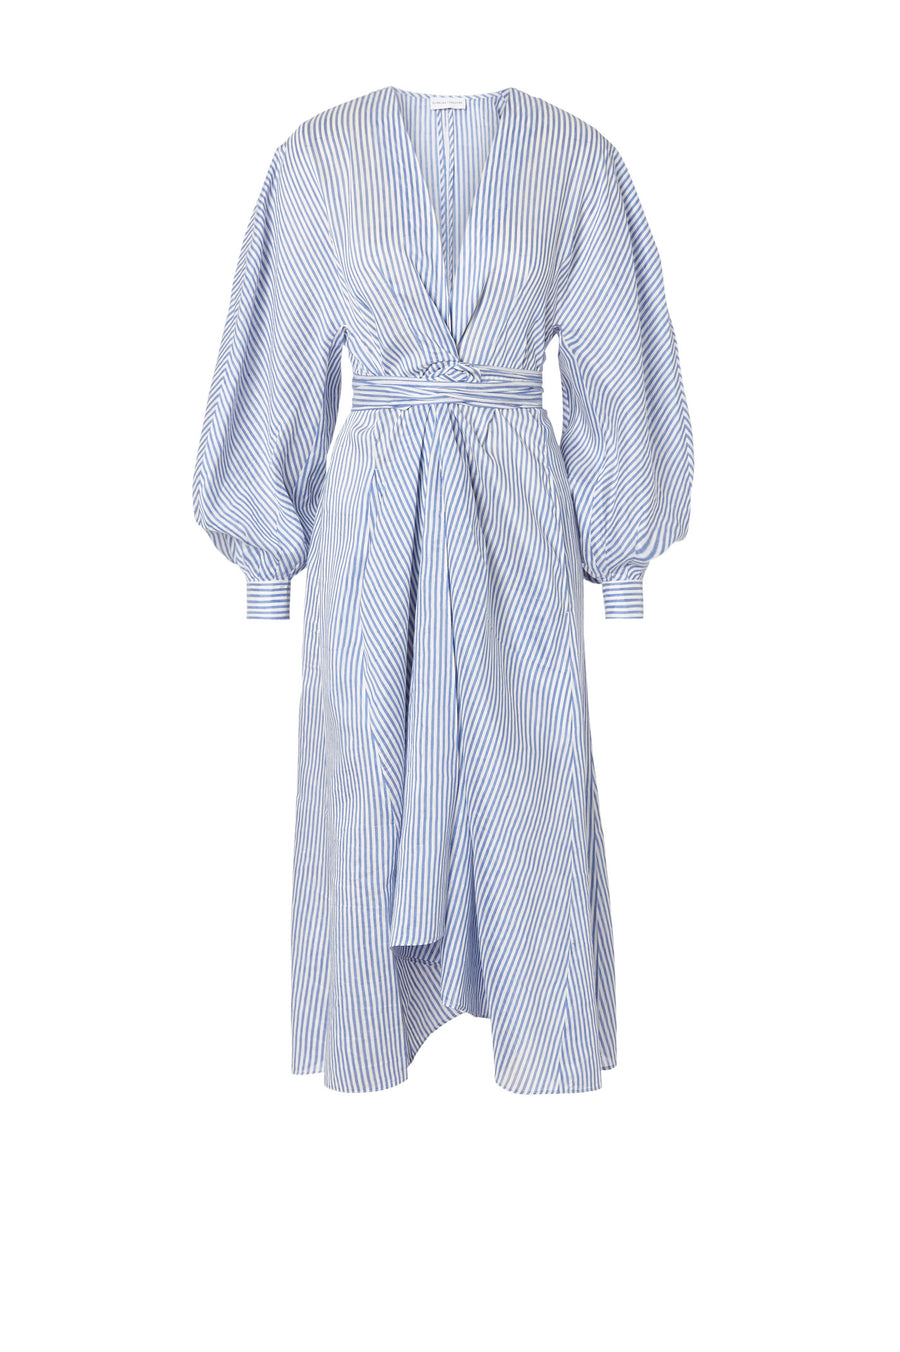 Stripe Voile Wrap Front Dress Blue/White, v- neckline, wrap front closure, ballooned sleeve, below the knee length